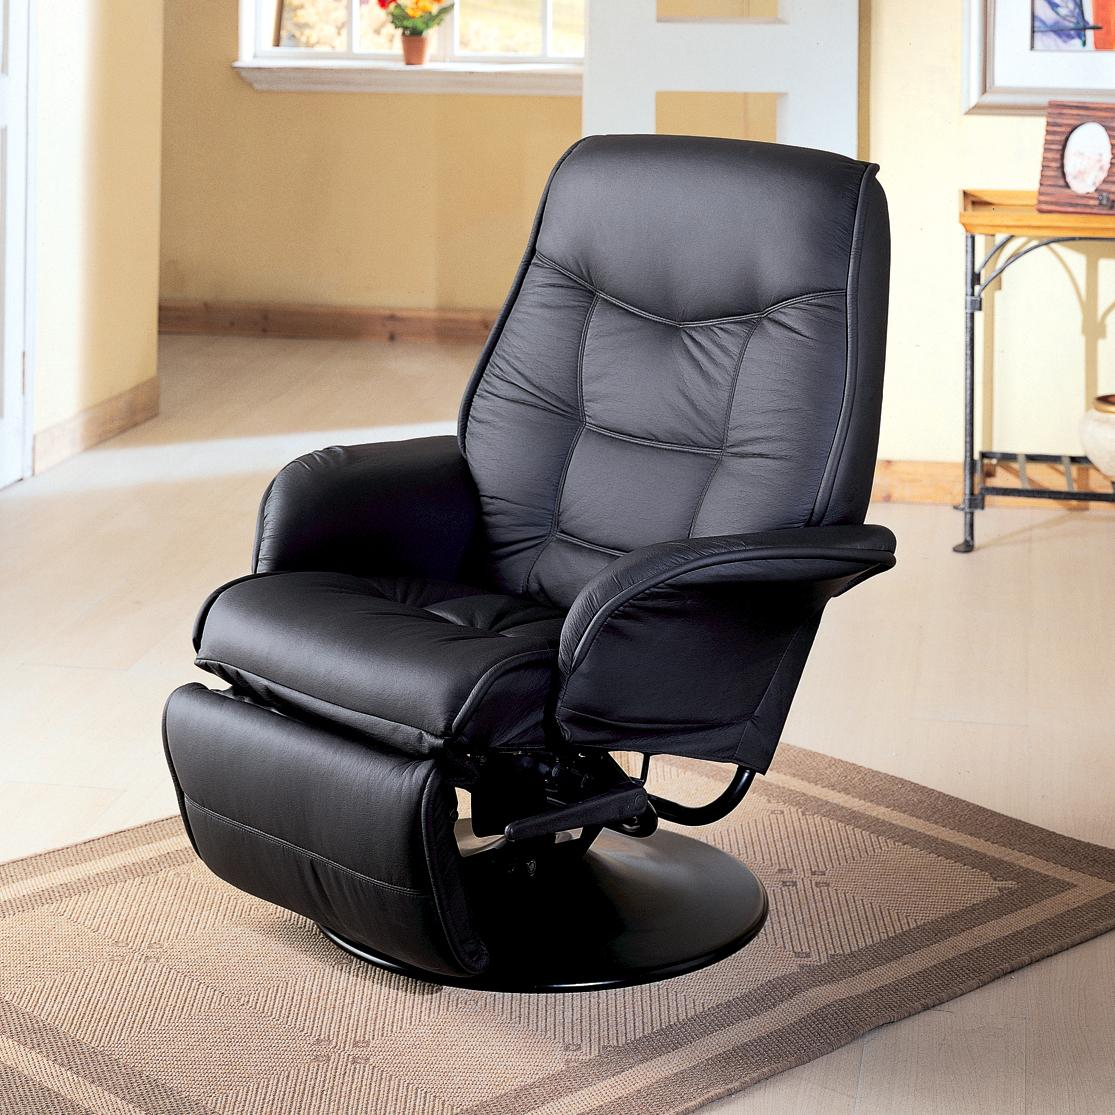 Swivel Recliner Chairs Berri Swivel Recliner With Flared Arms By Coaster At Dunk Bright Furniture